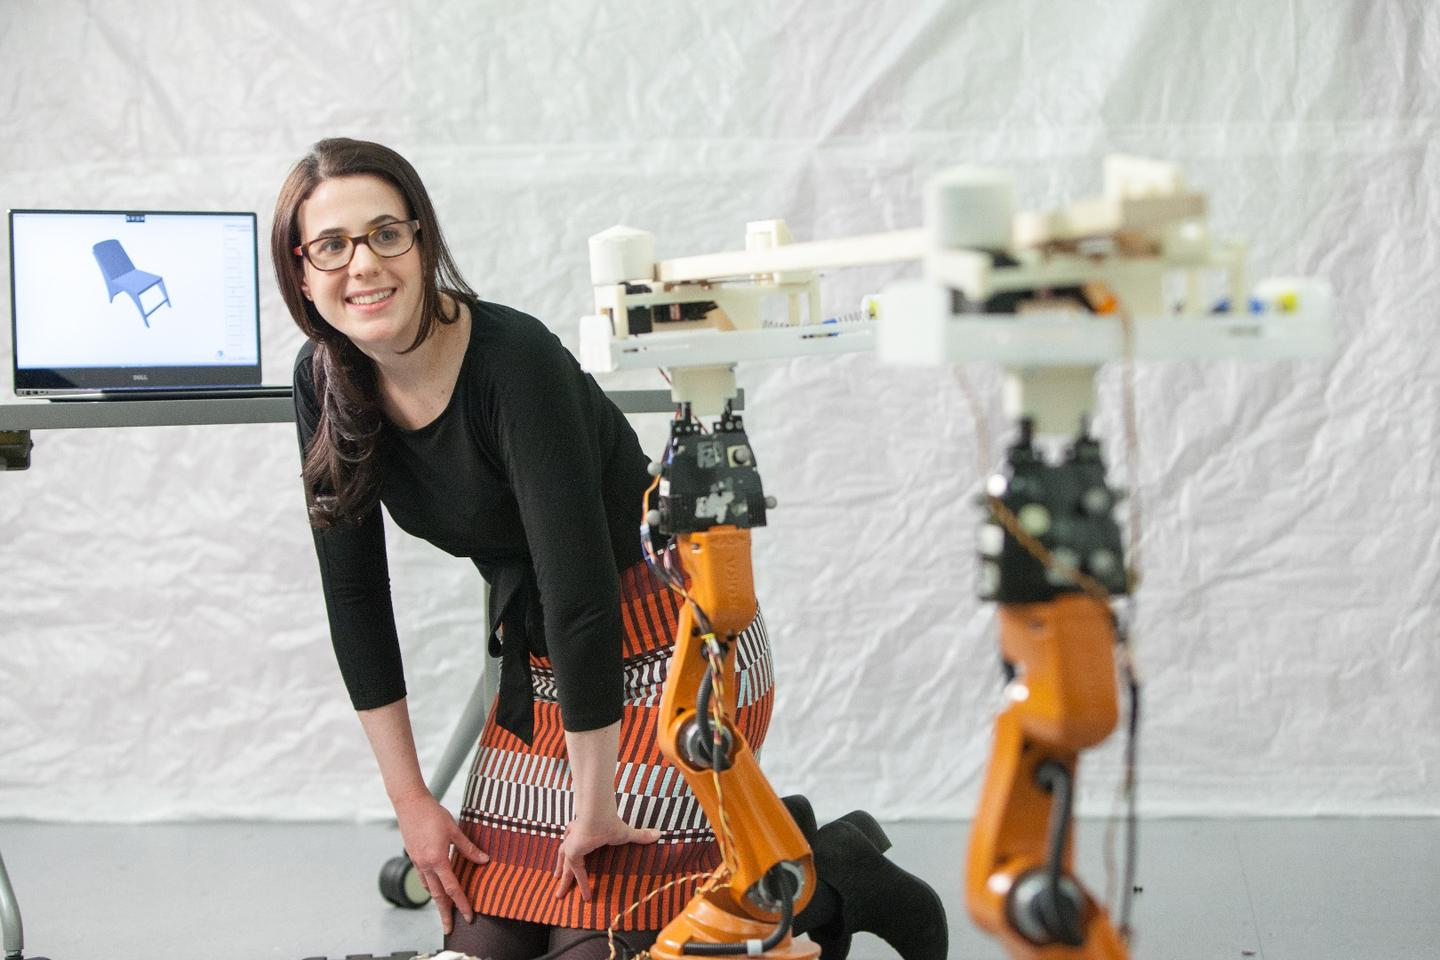 Adriana Schulz watches as the Kuka Youbots bring a piece of lumber to the chop saw